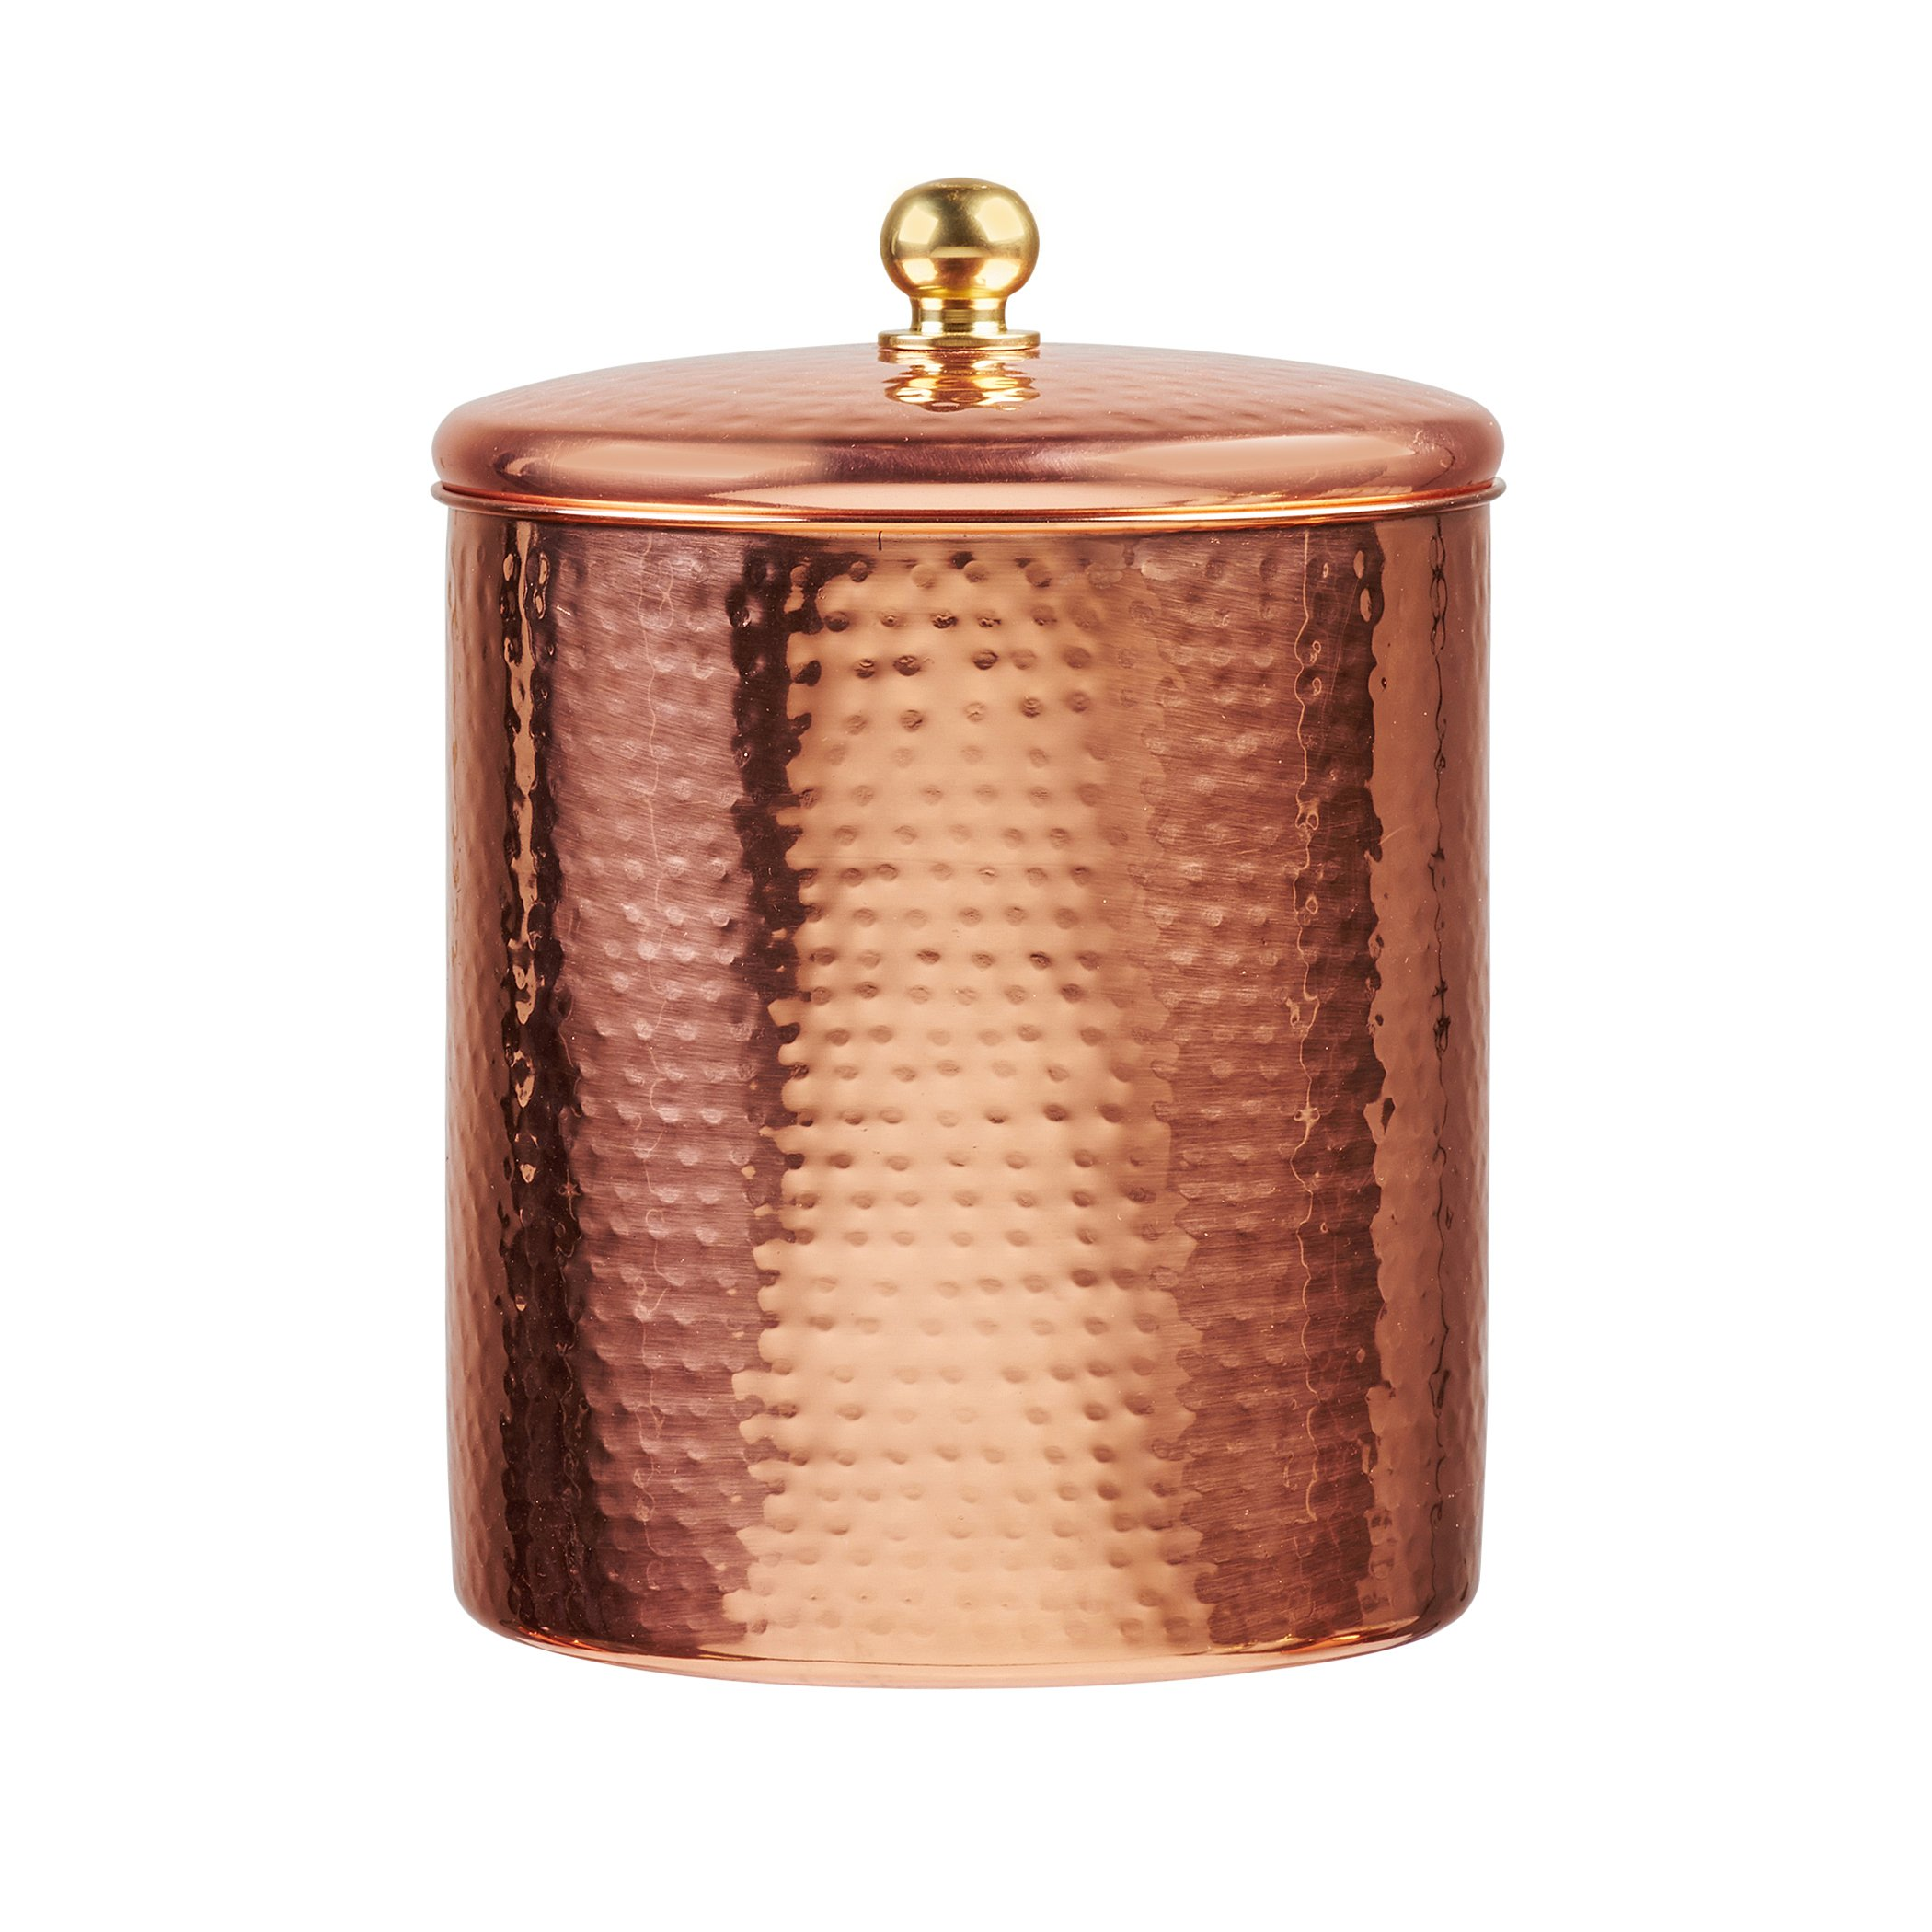 Amici A5AN832R Home Alexandria Copper Canister, Large/64 oz, Copper